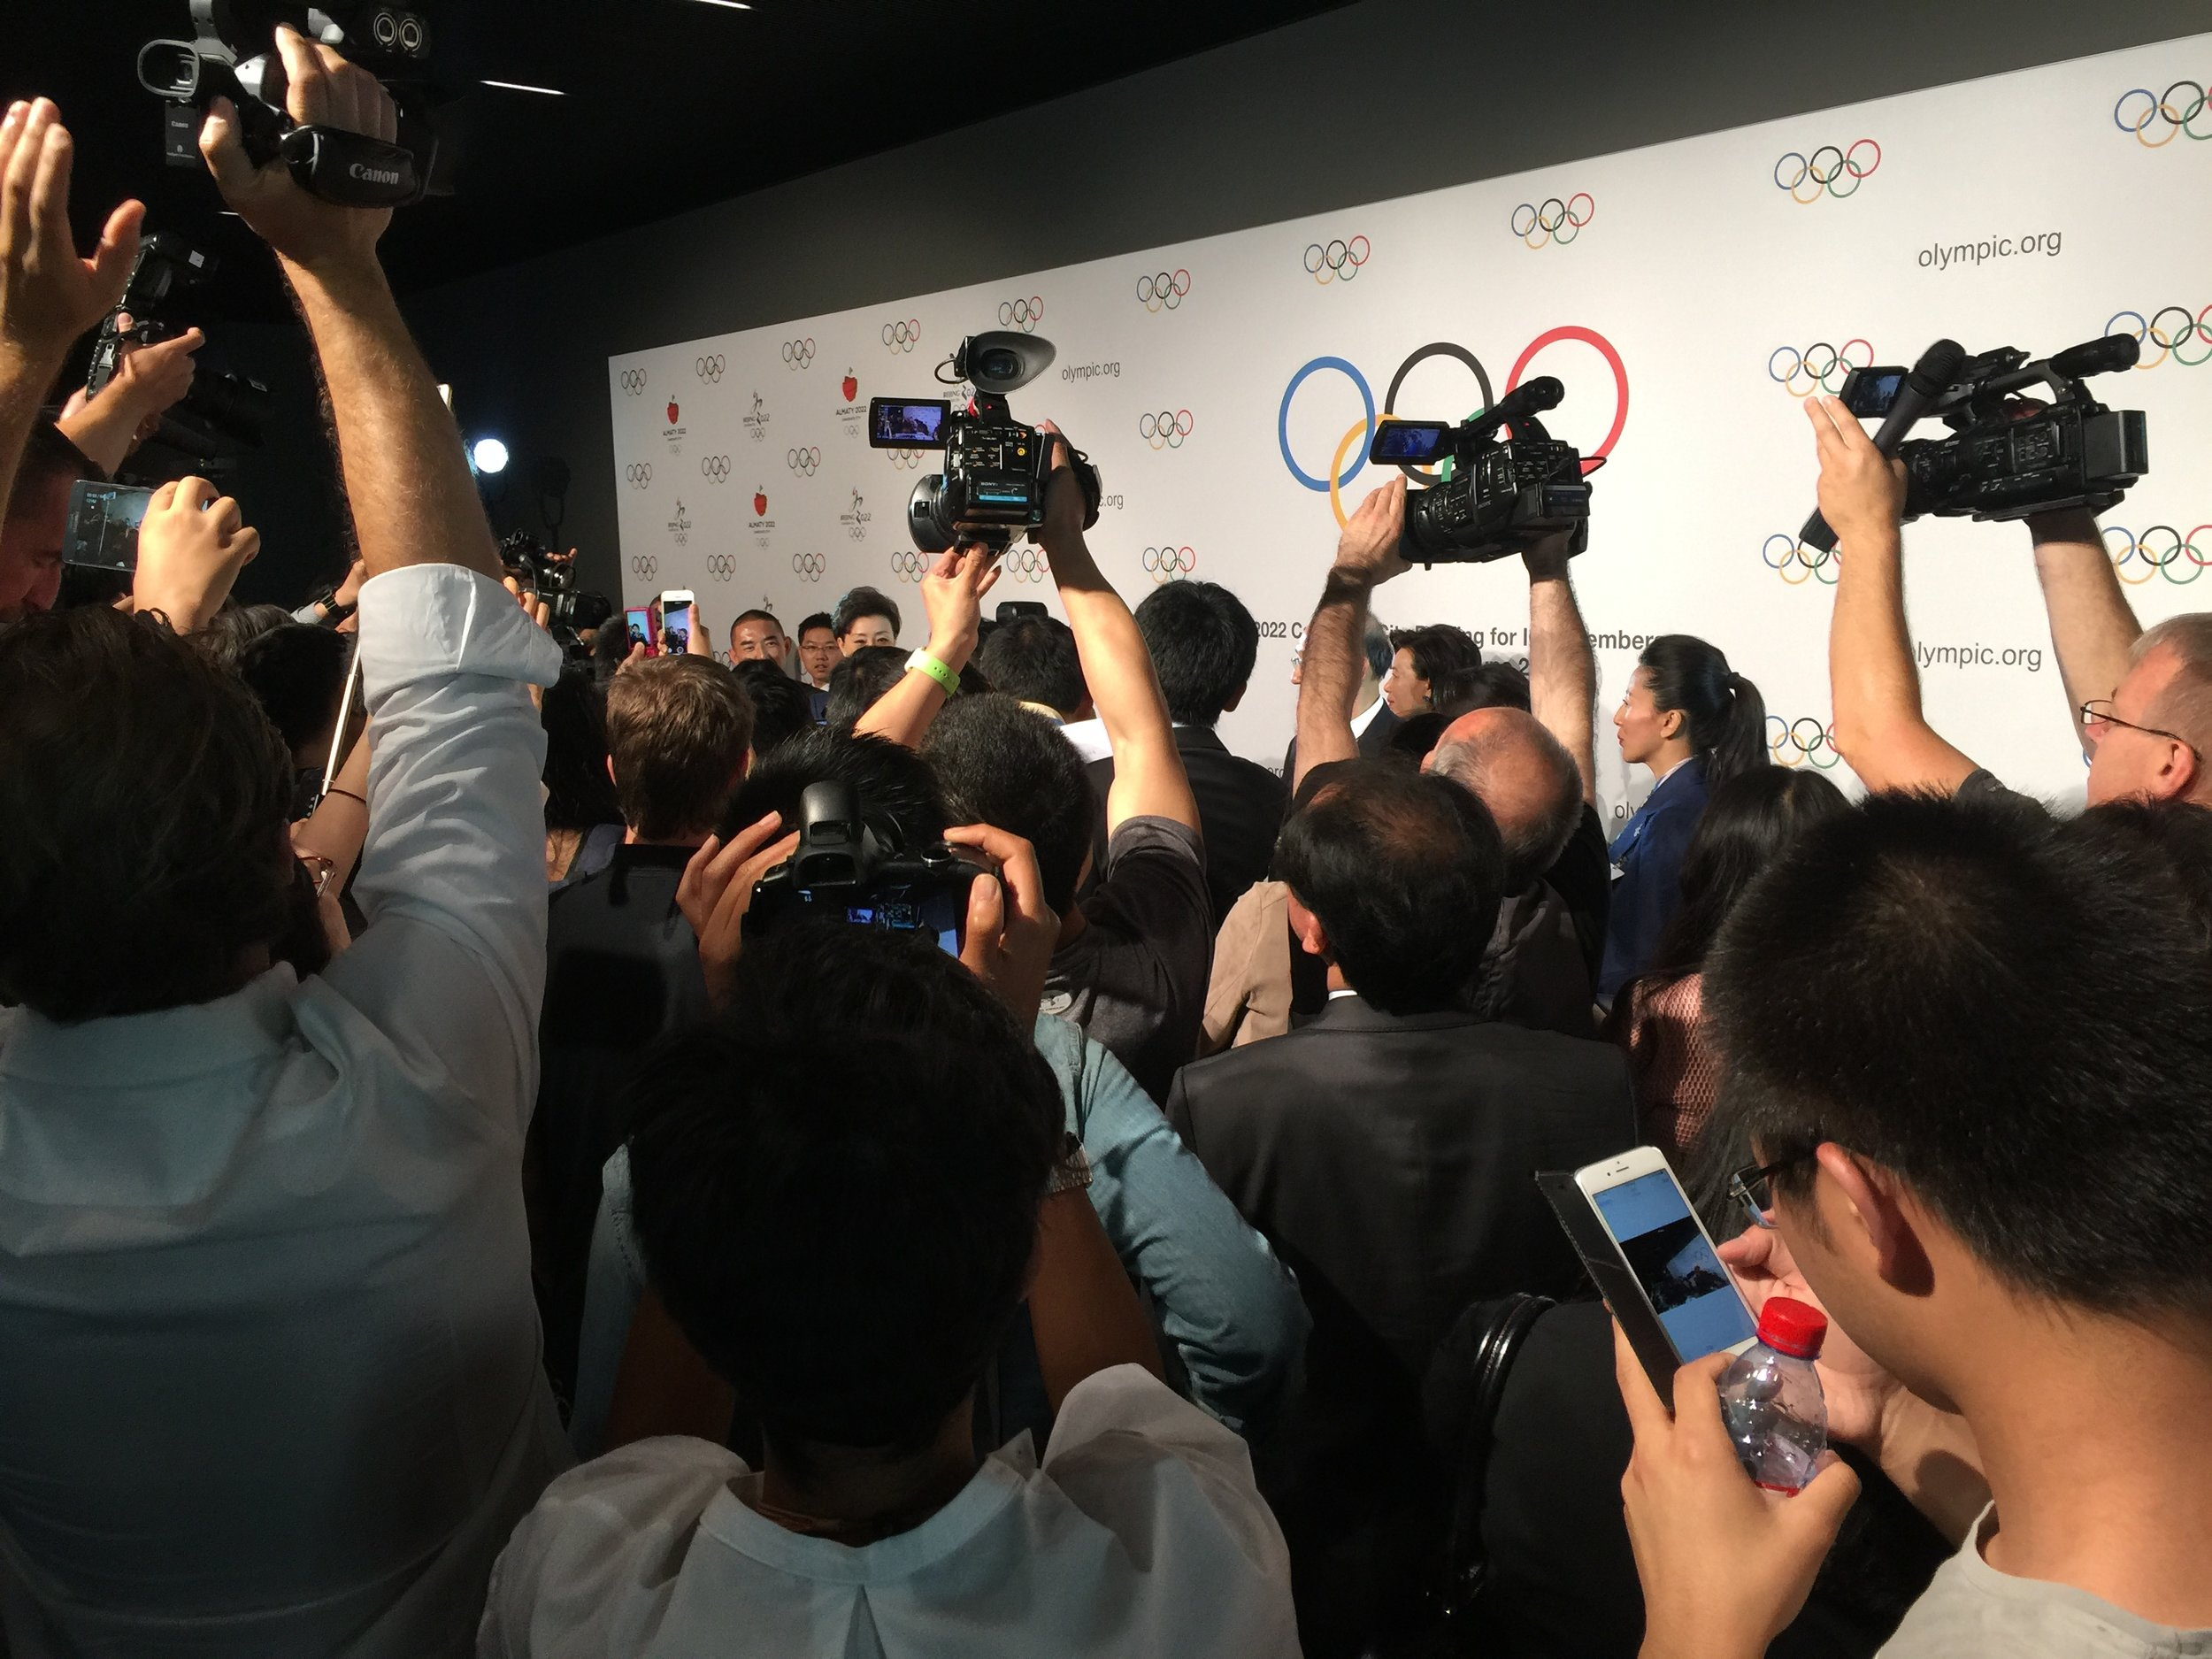 Dozens of reporters and camera crews, most of them Chinese, eagerly awaiting the Beijing 2022 bid team after its presentation to the IOC members at the Olympic Museum